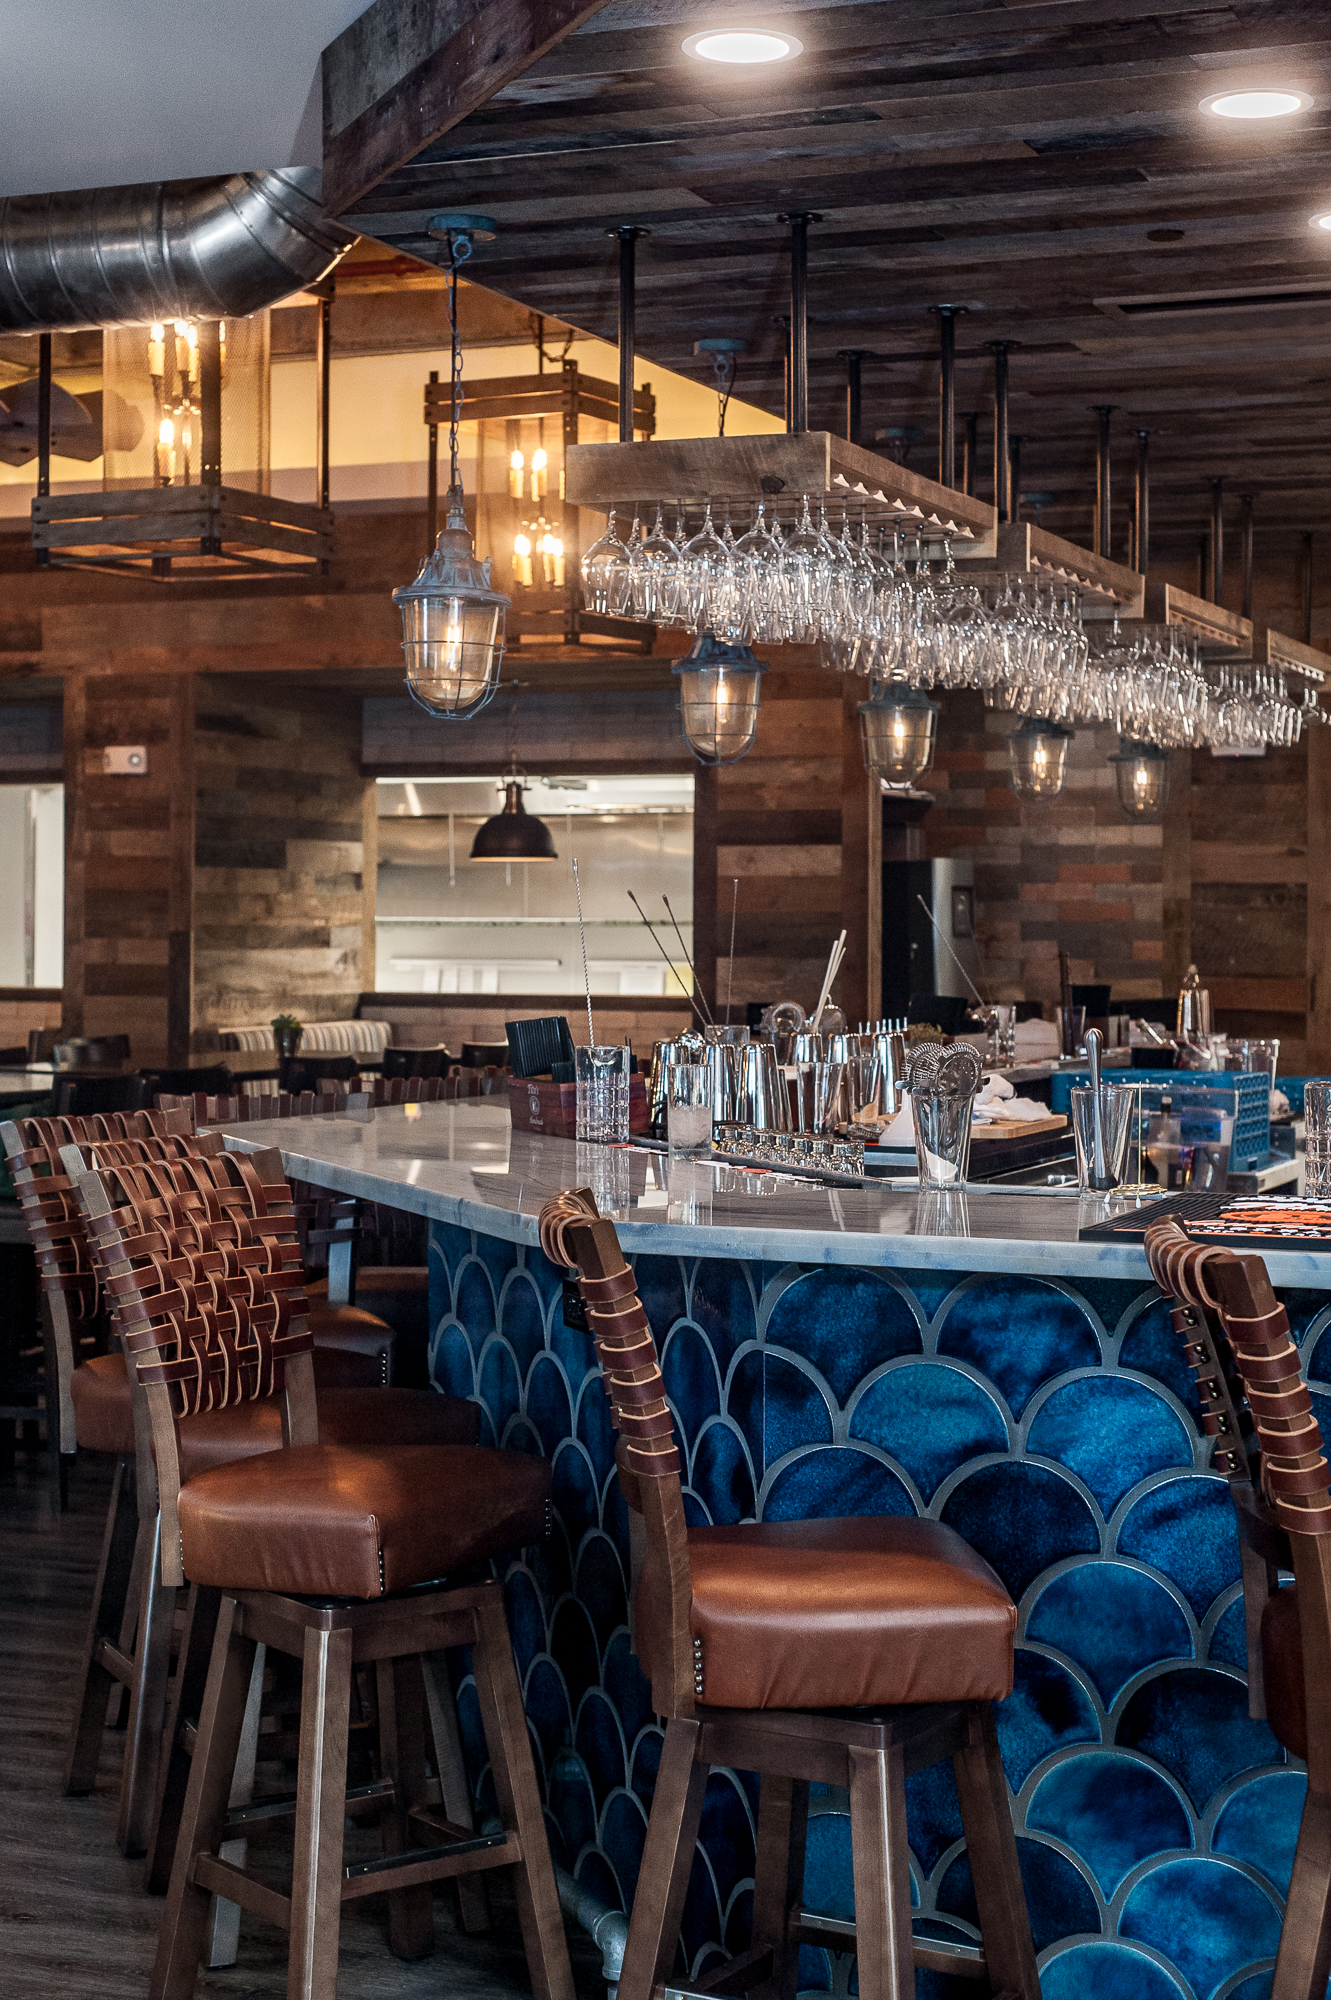 Micamy Design Studio_Interior Design_River and Post_Restaurant_Rooftop_Bar_Industrial_Rustic_Coastal_Riverside_Reclaimed Wood_Blog Style_Styling Accessories_Dining_Cocktails (6).jpg